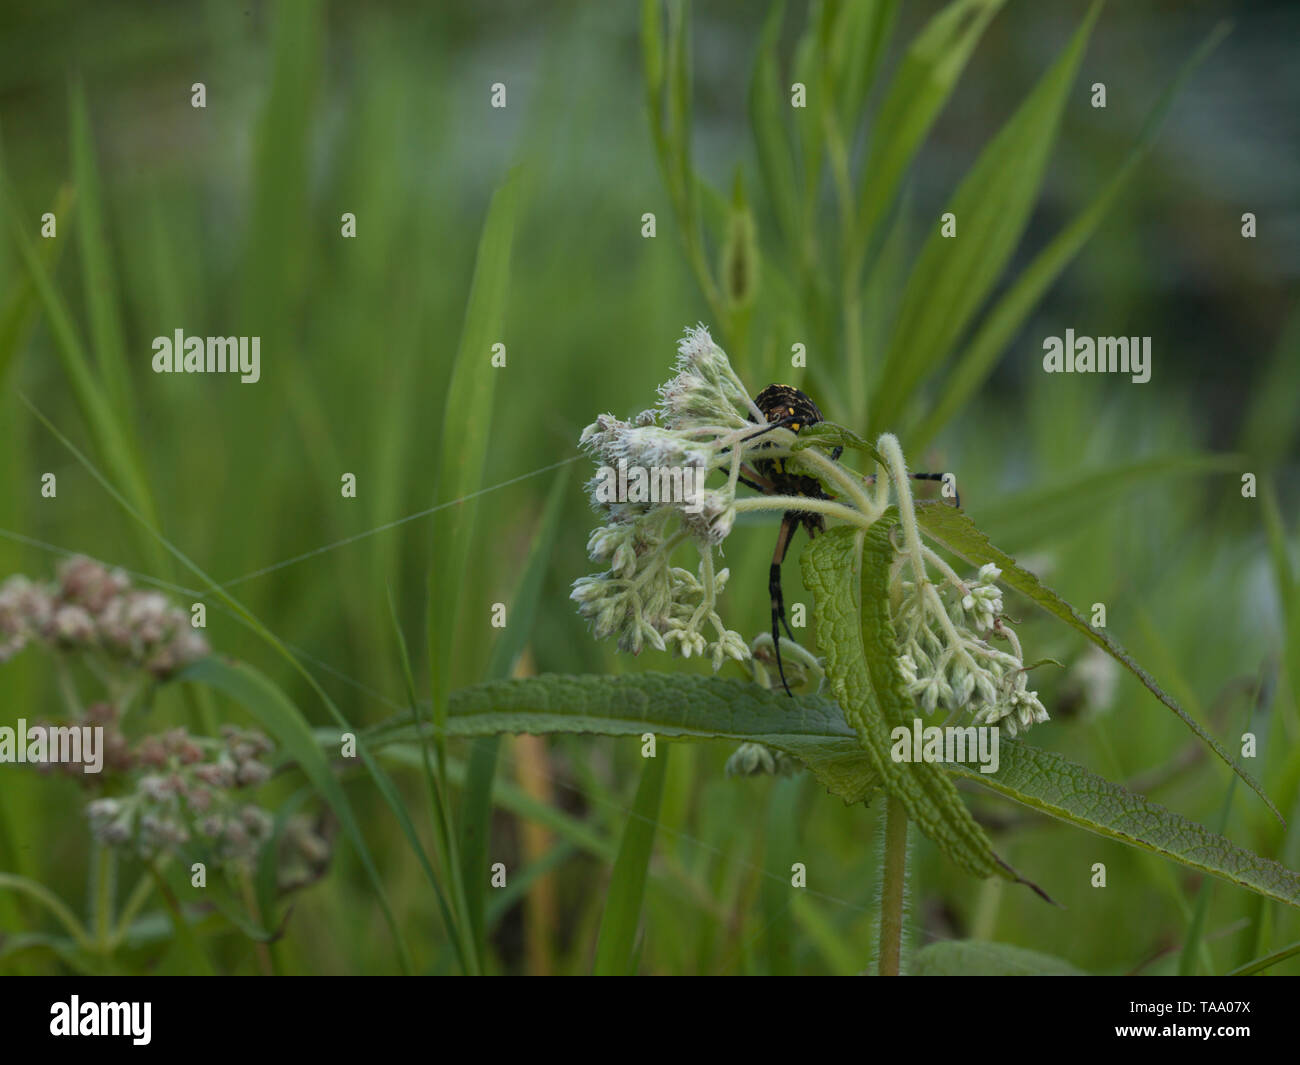 Orb Spider Weaving Web on Common Boneset - Stock Image